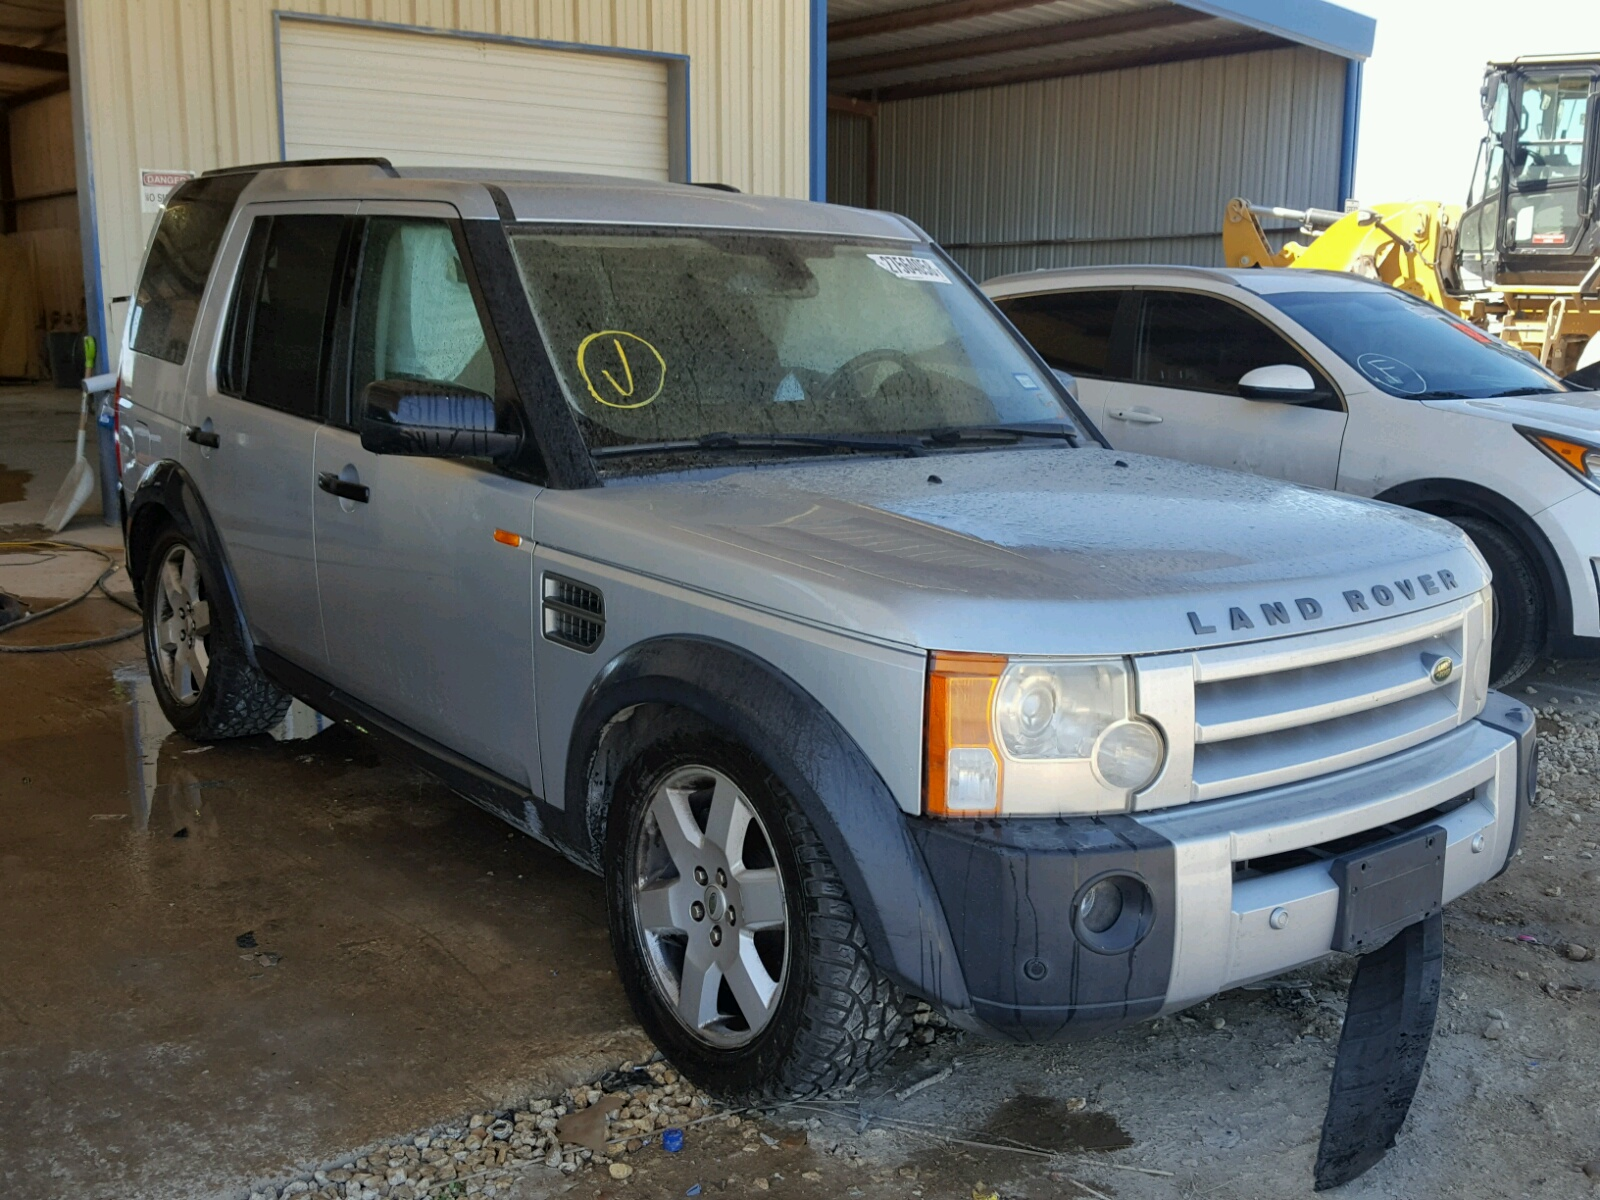 land rover used at landrover wheel all drive mall navigation cars auto sale hse for saugus